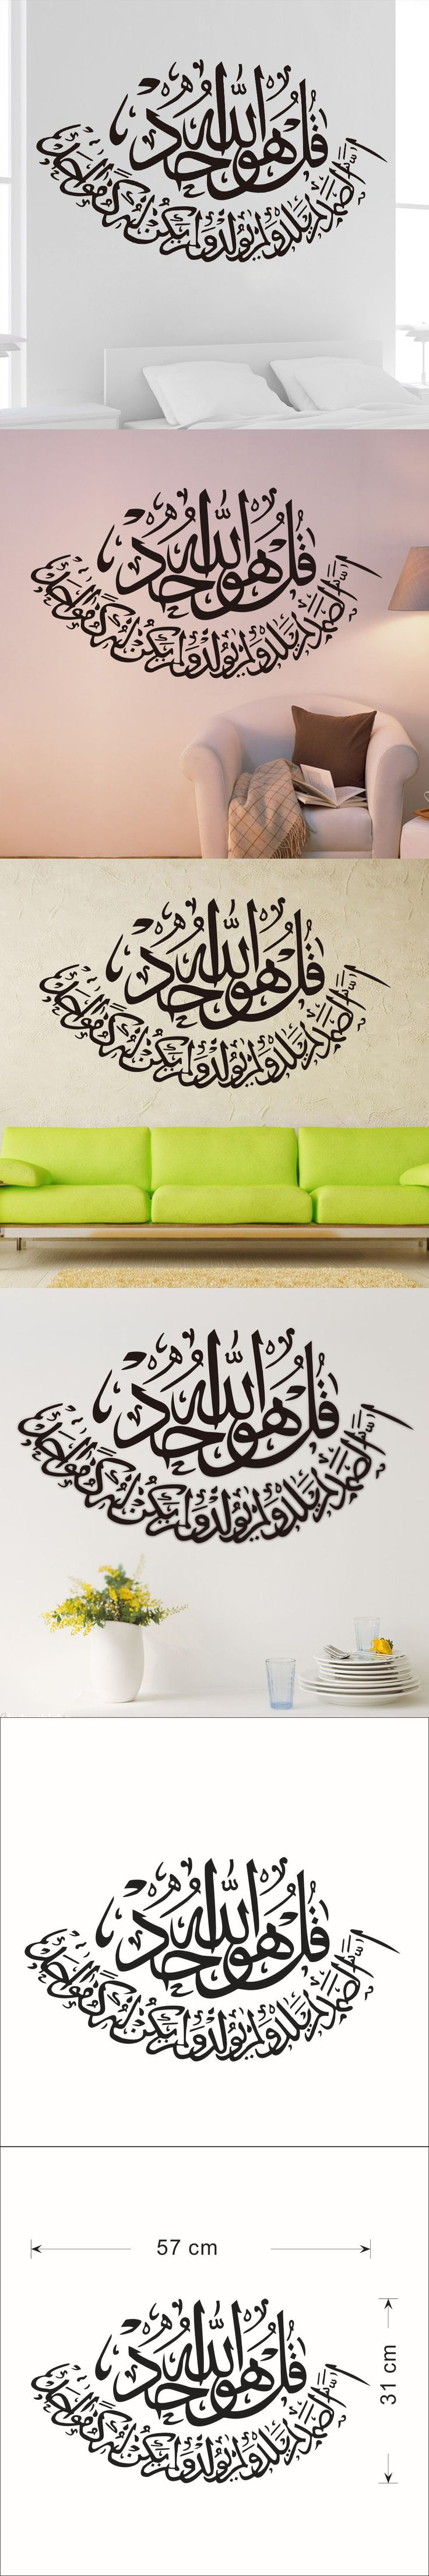 Islamic Muslim Arabic Inspiration Art Wall Stickers Love Removable Living Room Poster Vinyl Bedroom Decoration Home Decor Mural $5.7